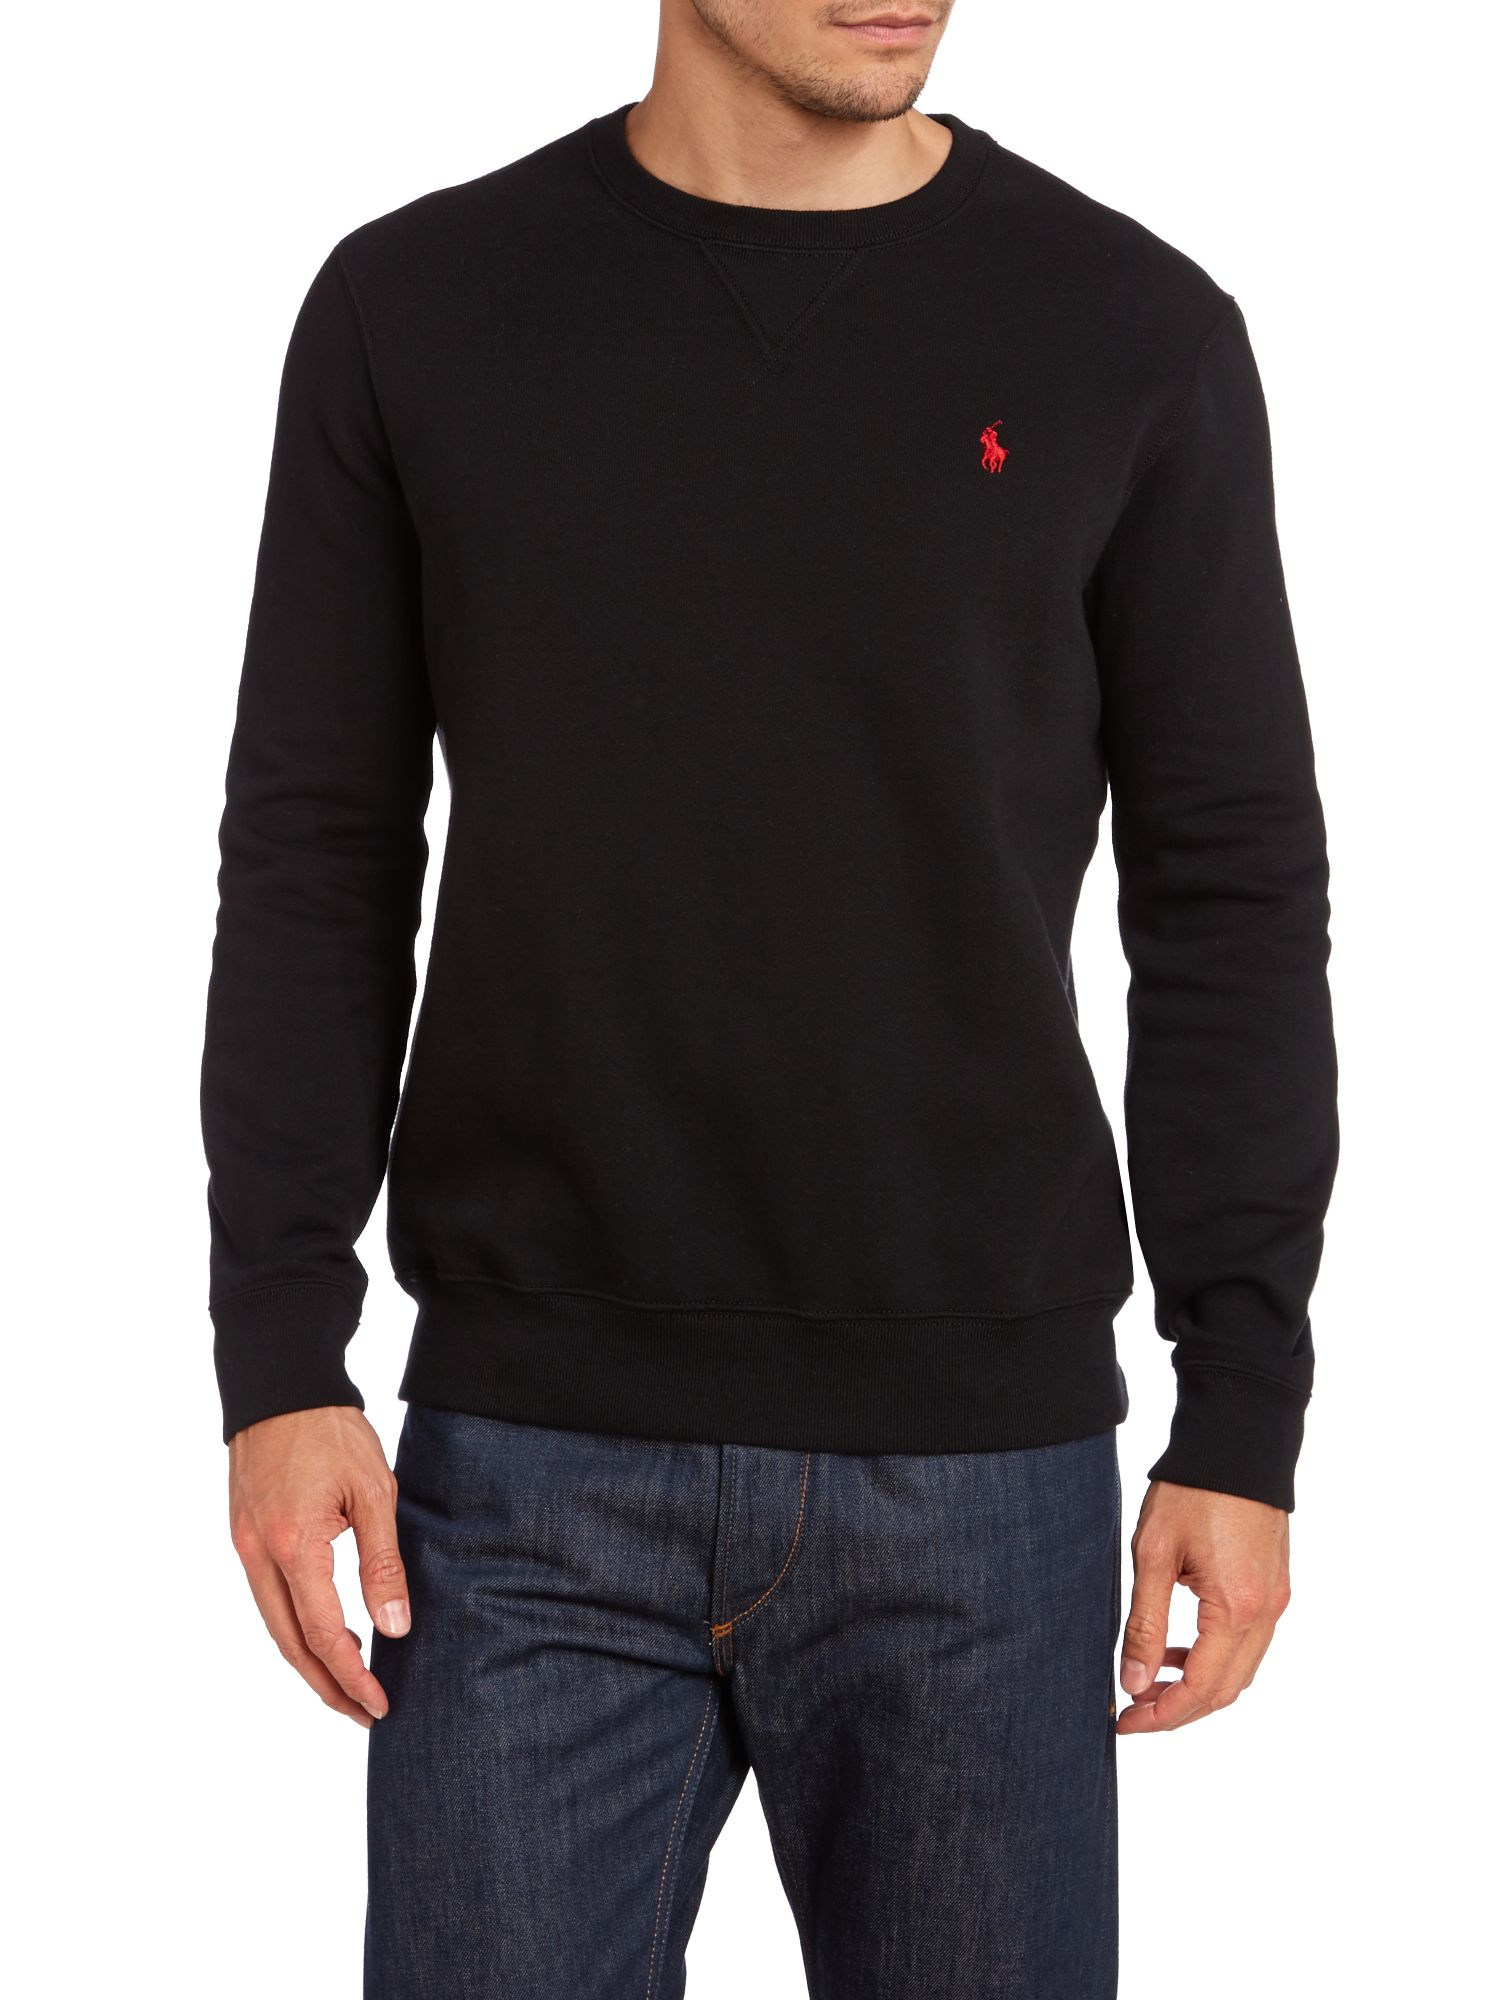 polo ralph lauren crew neck sweatshirt in black for men lyst. Black Bedroom Furniture Sets. Home Design Ideas